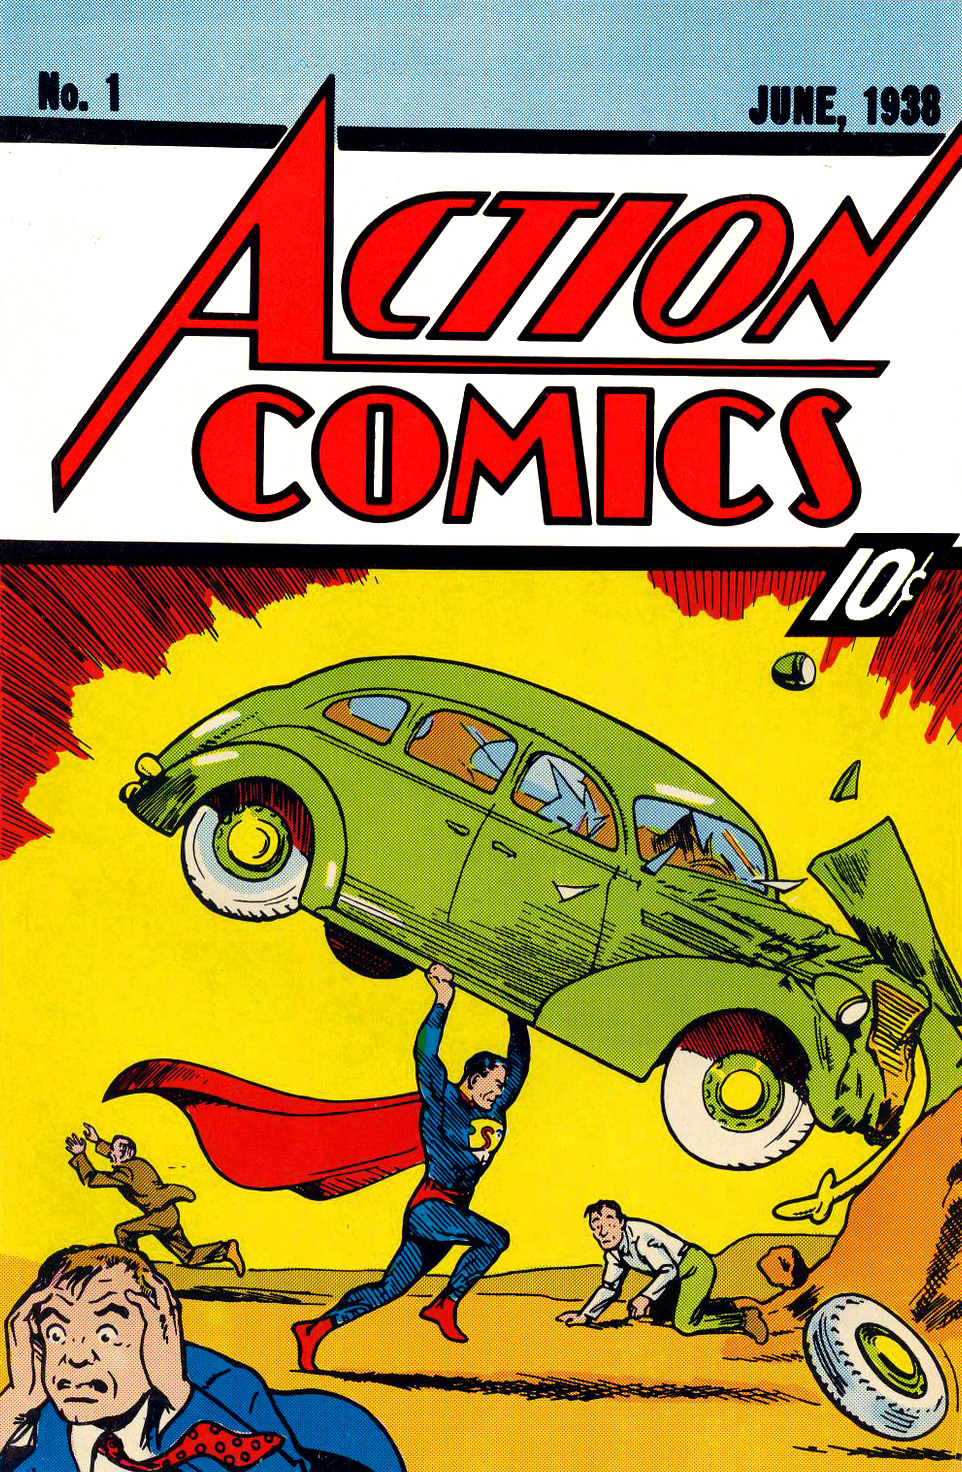 a look into superhero genre during 1930s He's the first of the superheroes, a genre that's grown into a modern mass-media   deeply rooted in the psyche of working america [in the early 1930s]  but  superman couldn't quite seem to shake his stodgy reputation.